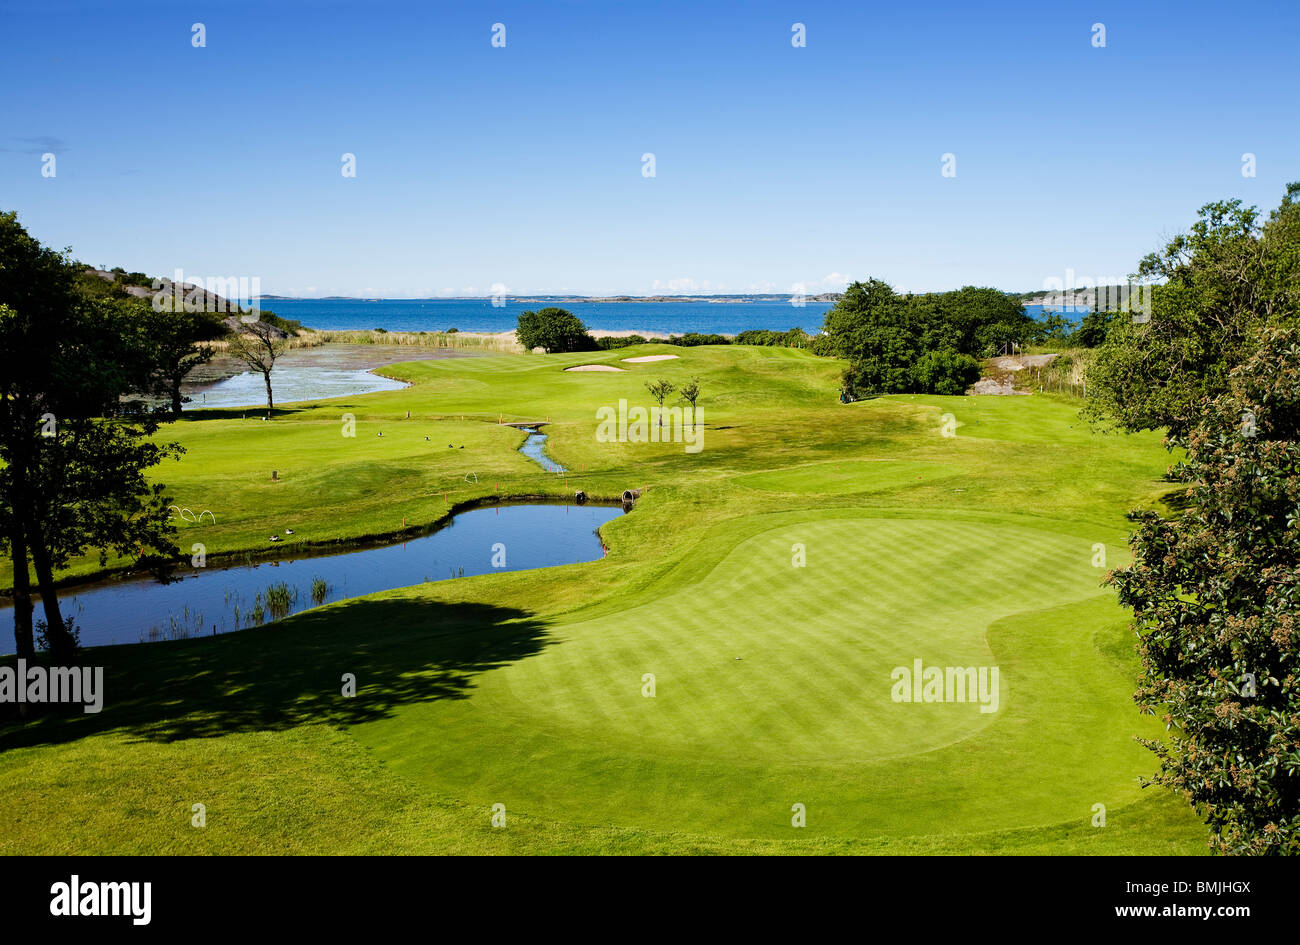 Golf course in sunlight - Stock Image